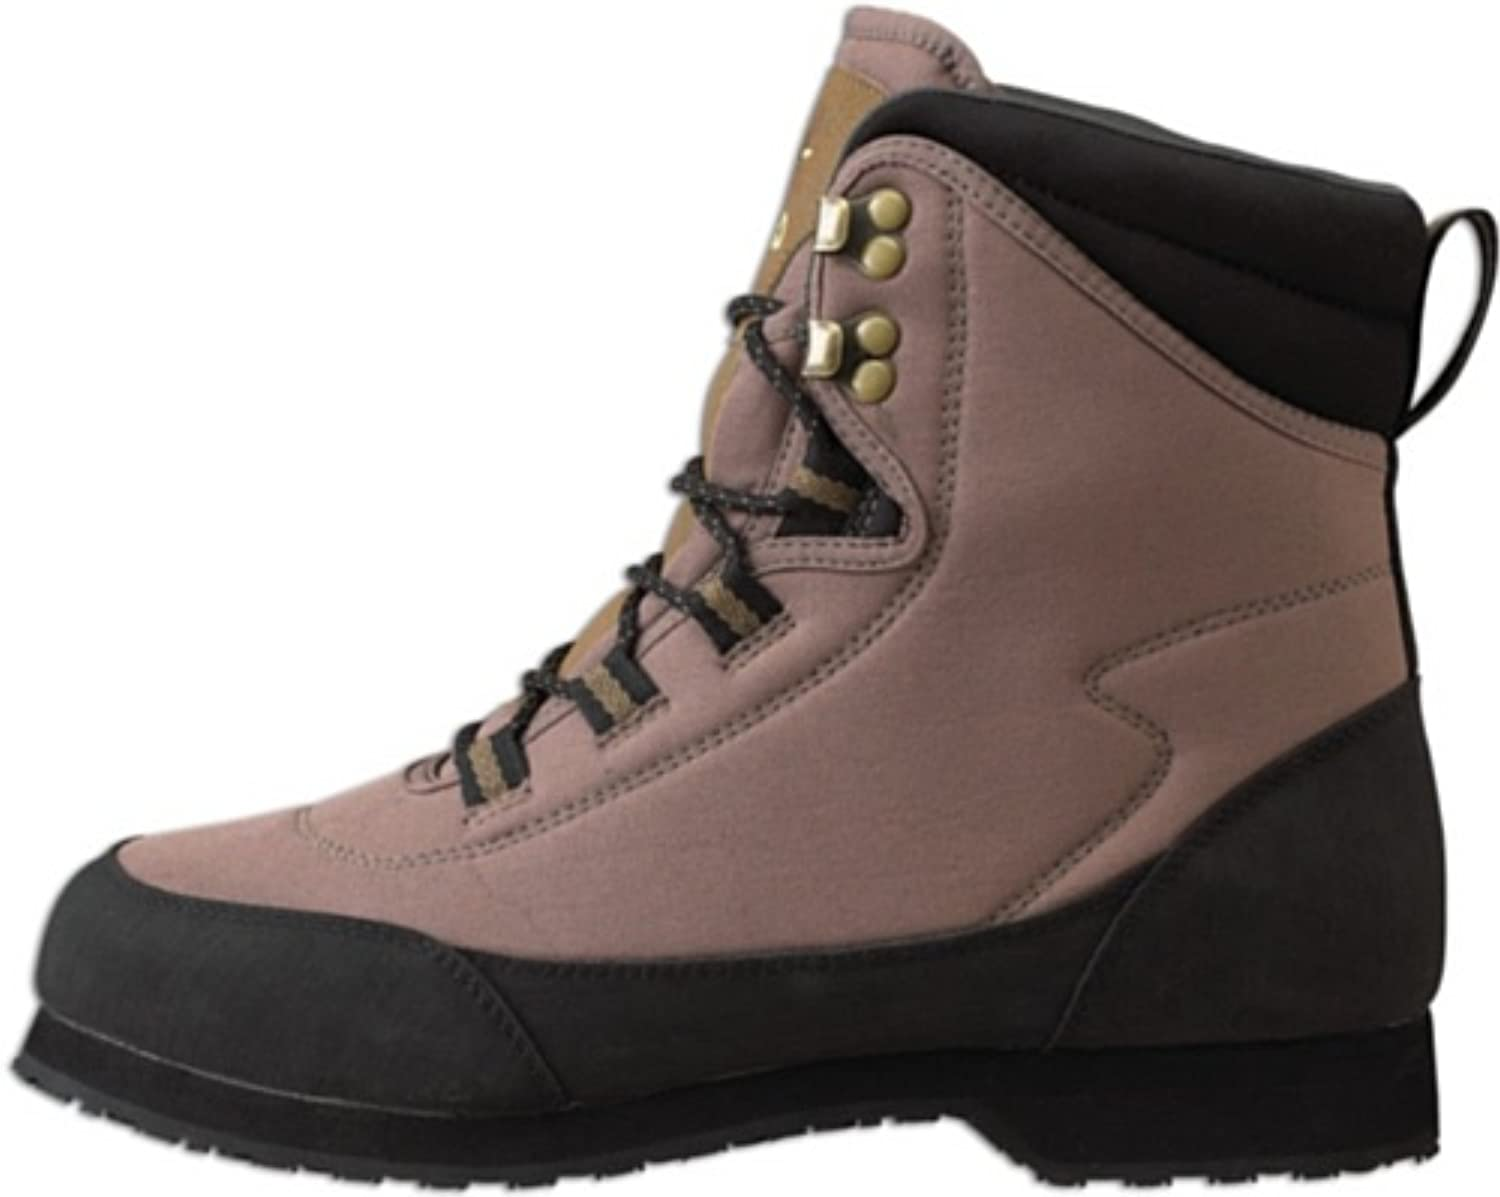 Caddis Men's Ultralite Taupe and Black Ecosmart Grip Sole with studs Wading shoes